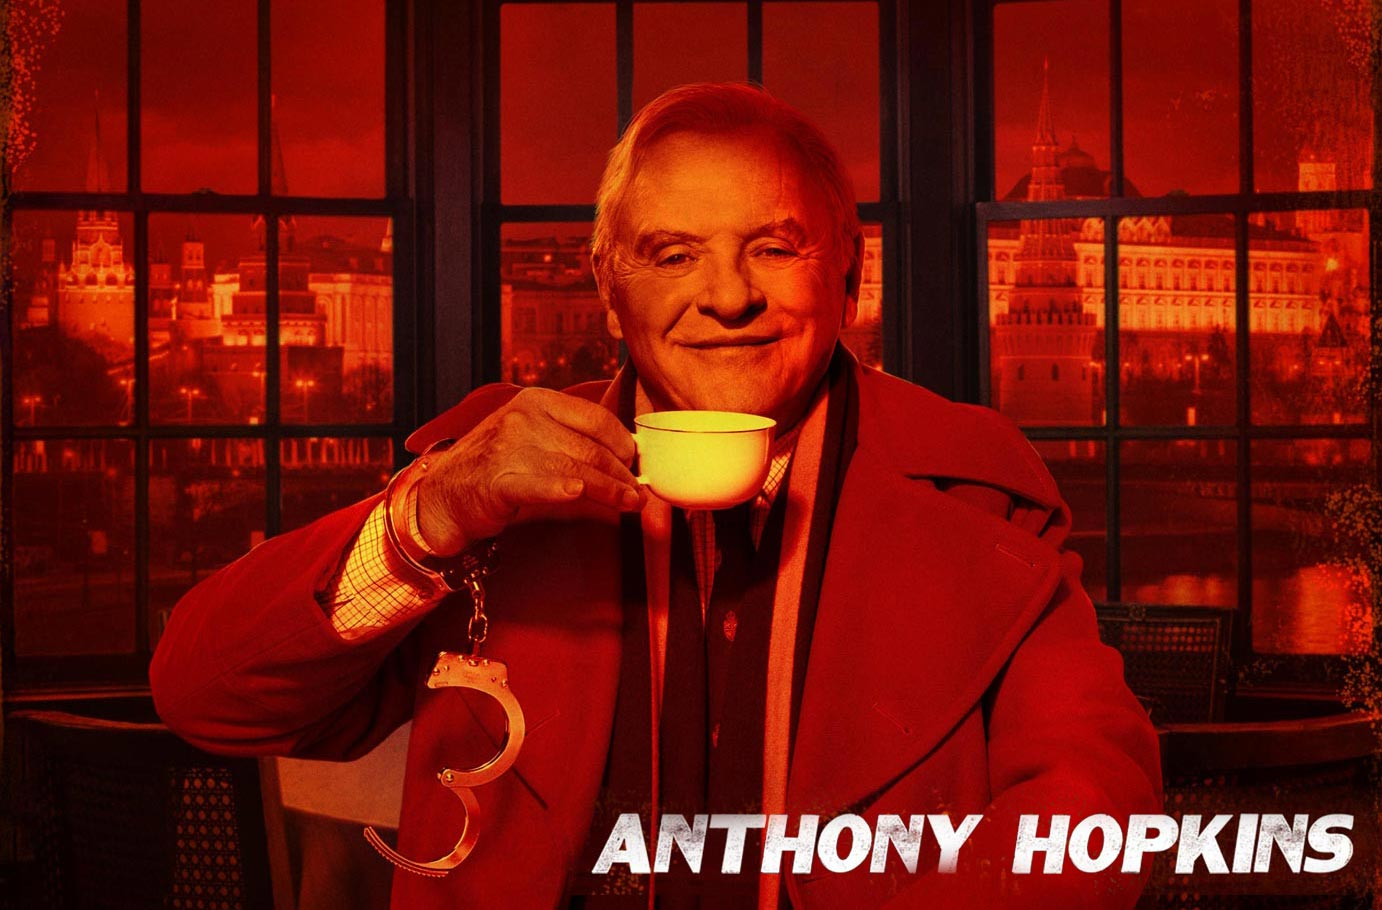 red 2 sir anthony hopkins photo 34528265 fanpop